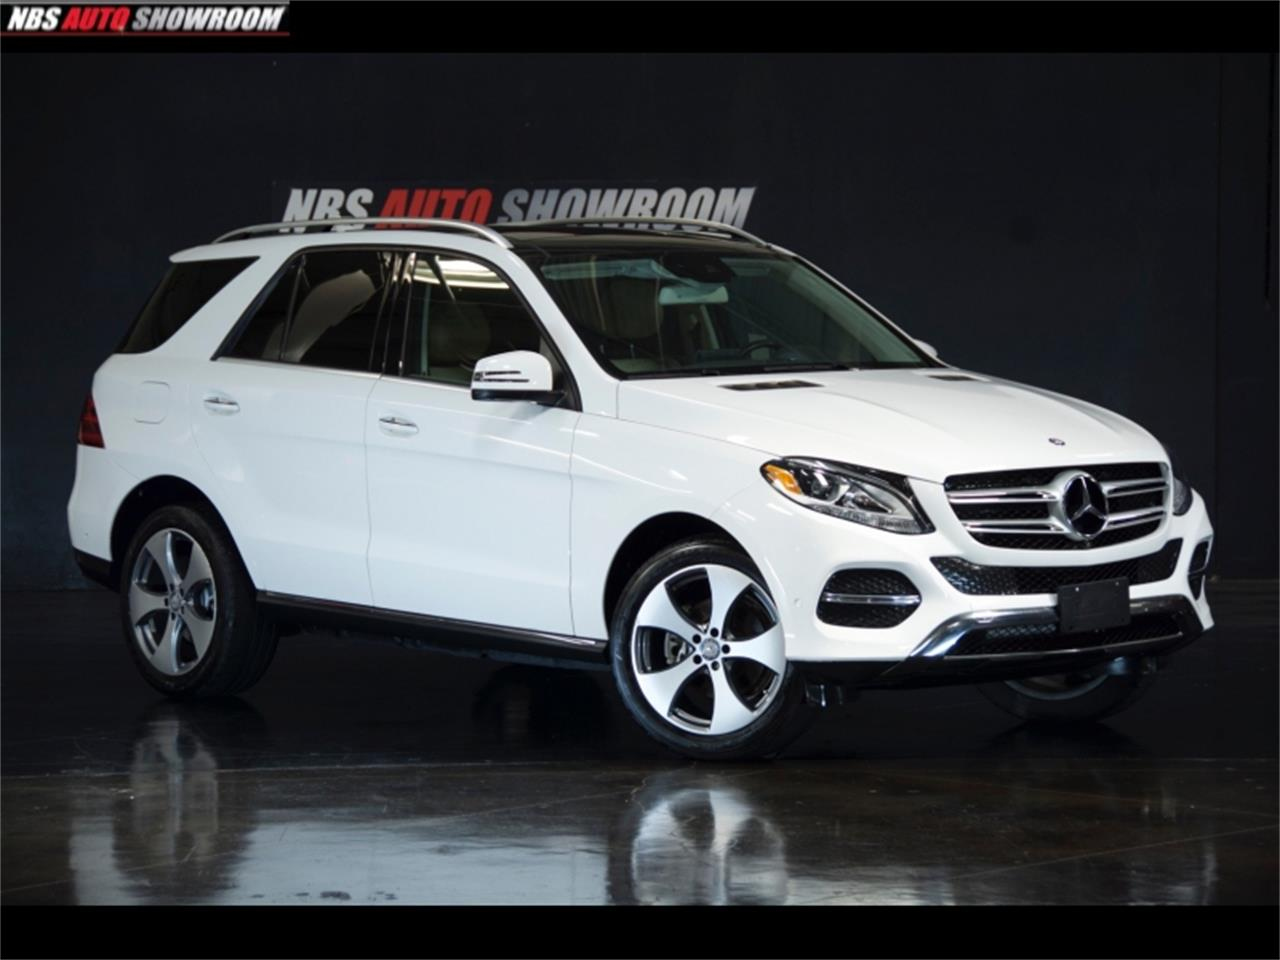 for sale 2016 mercedes-benz gl-class in milpitas, california cars - milpitas, ca at geebo